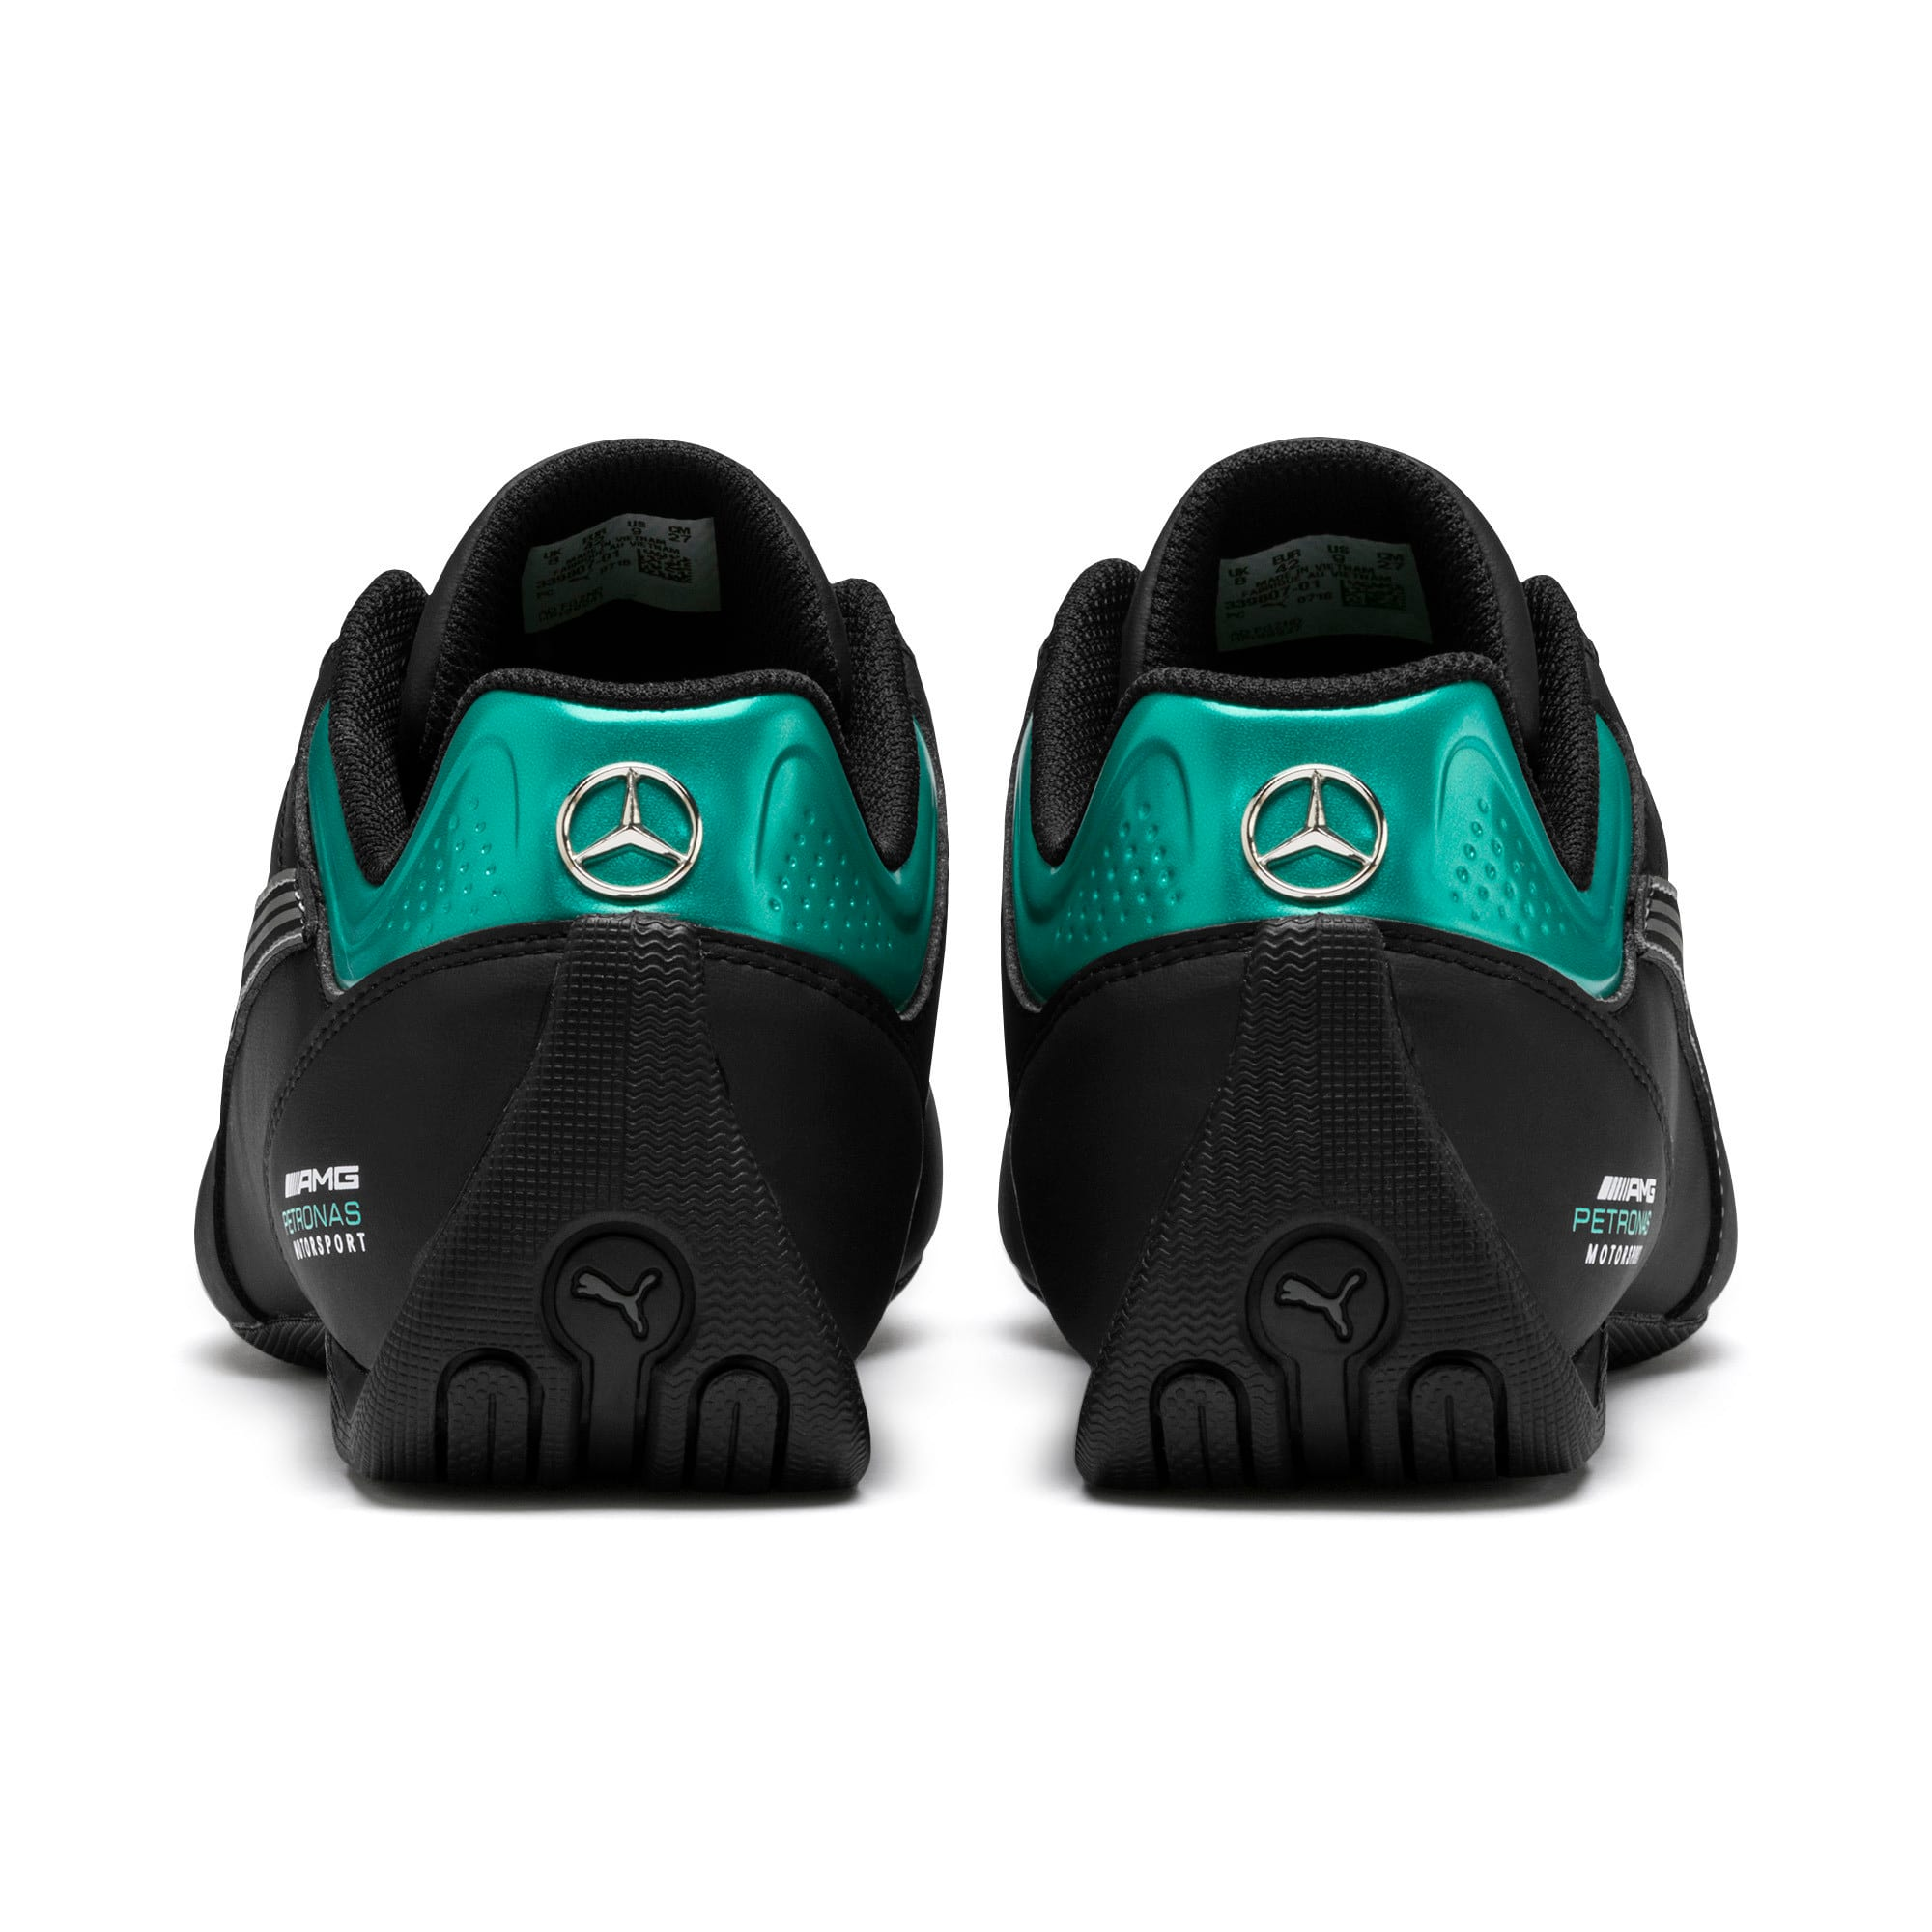 Thumbnail 4 of Mercedes AMG Petronas Motorsport Future Kart Cat Trainers, Puma Black-Smoked Pearl, medium